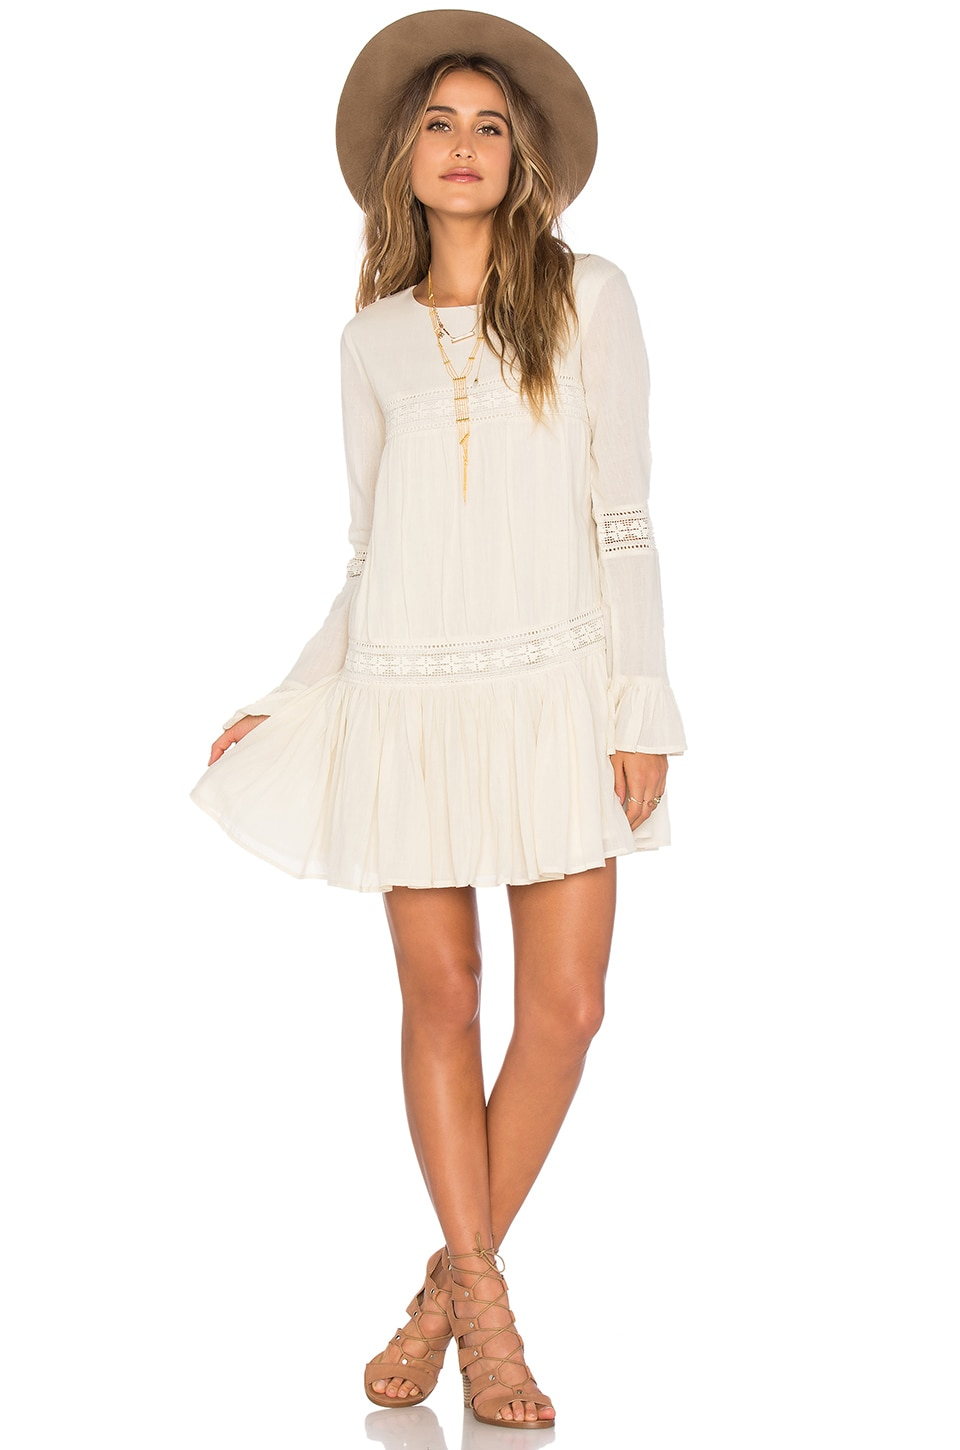 Tularosa Berkley Dress in Natural